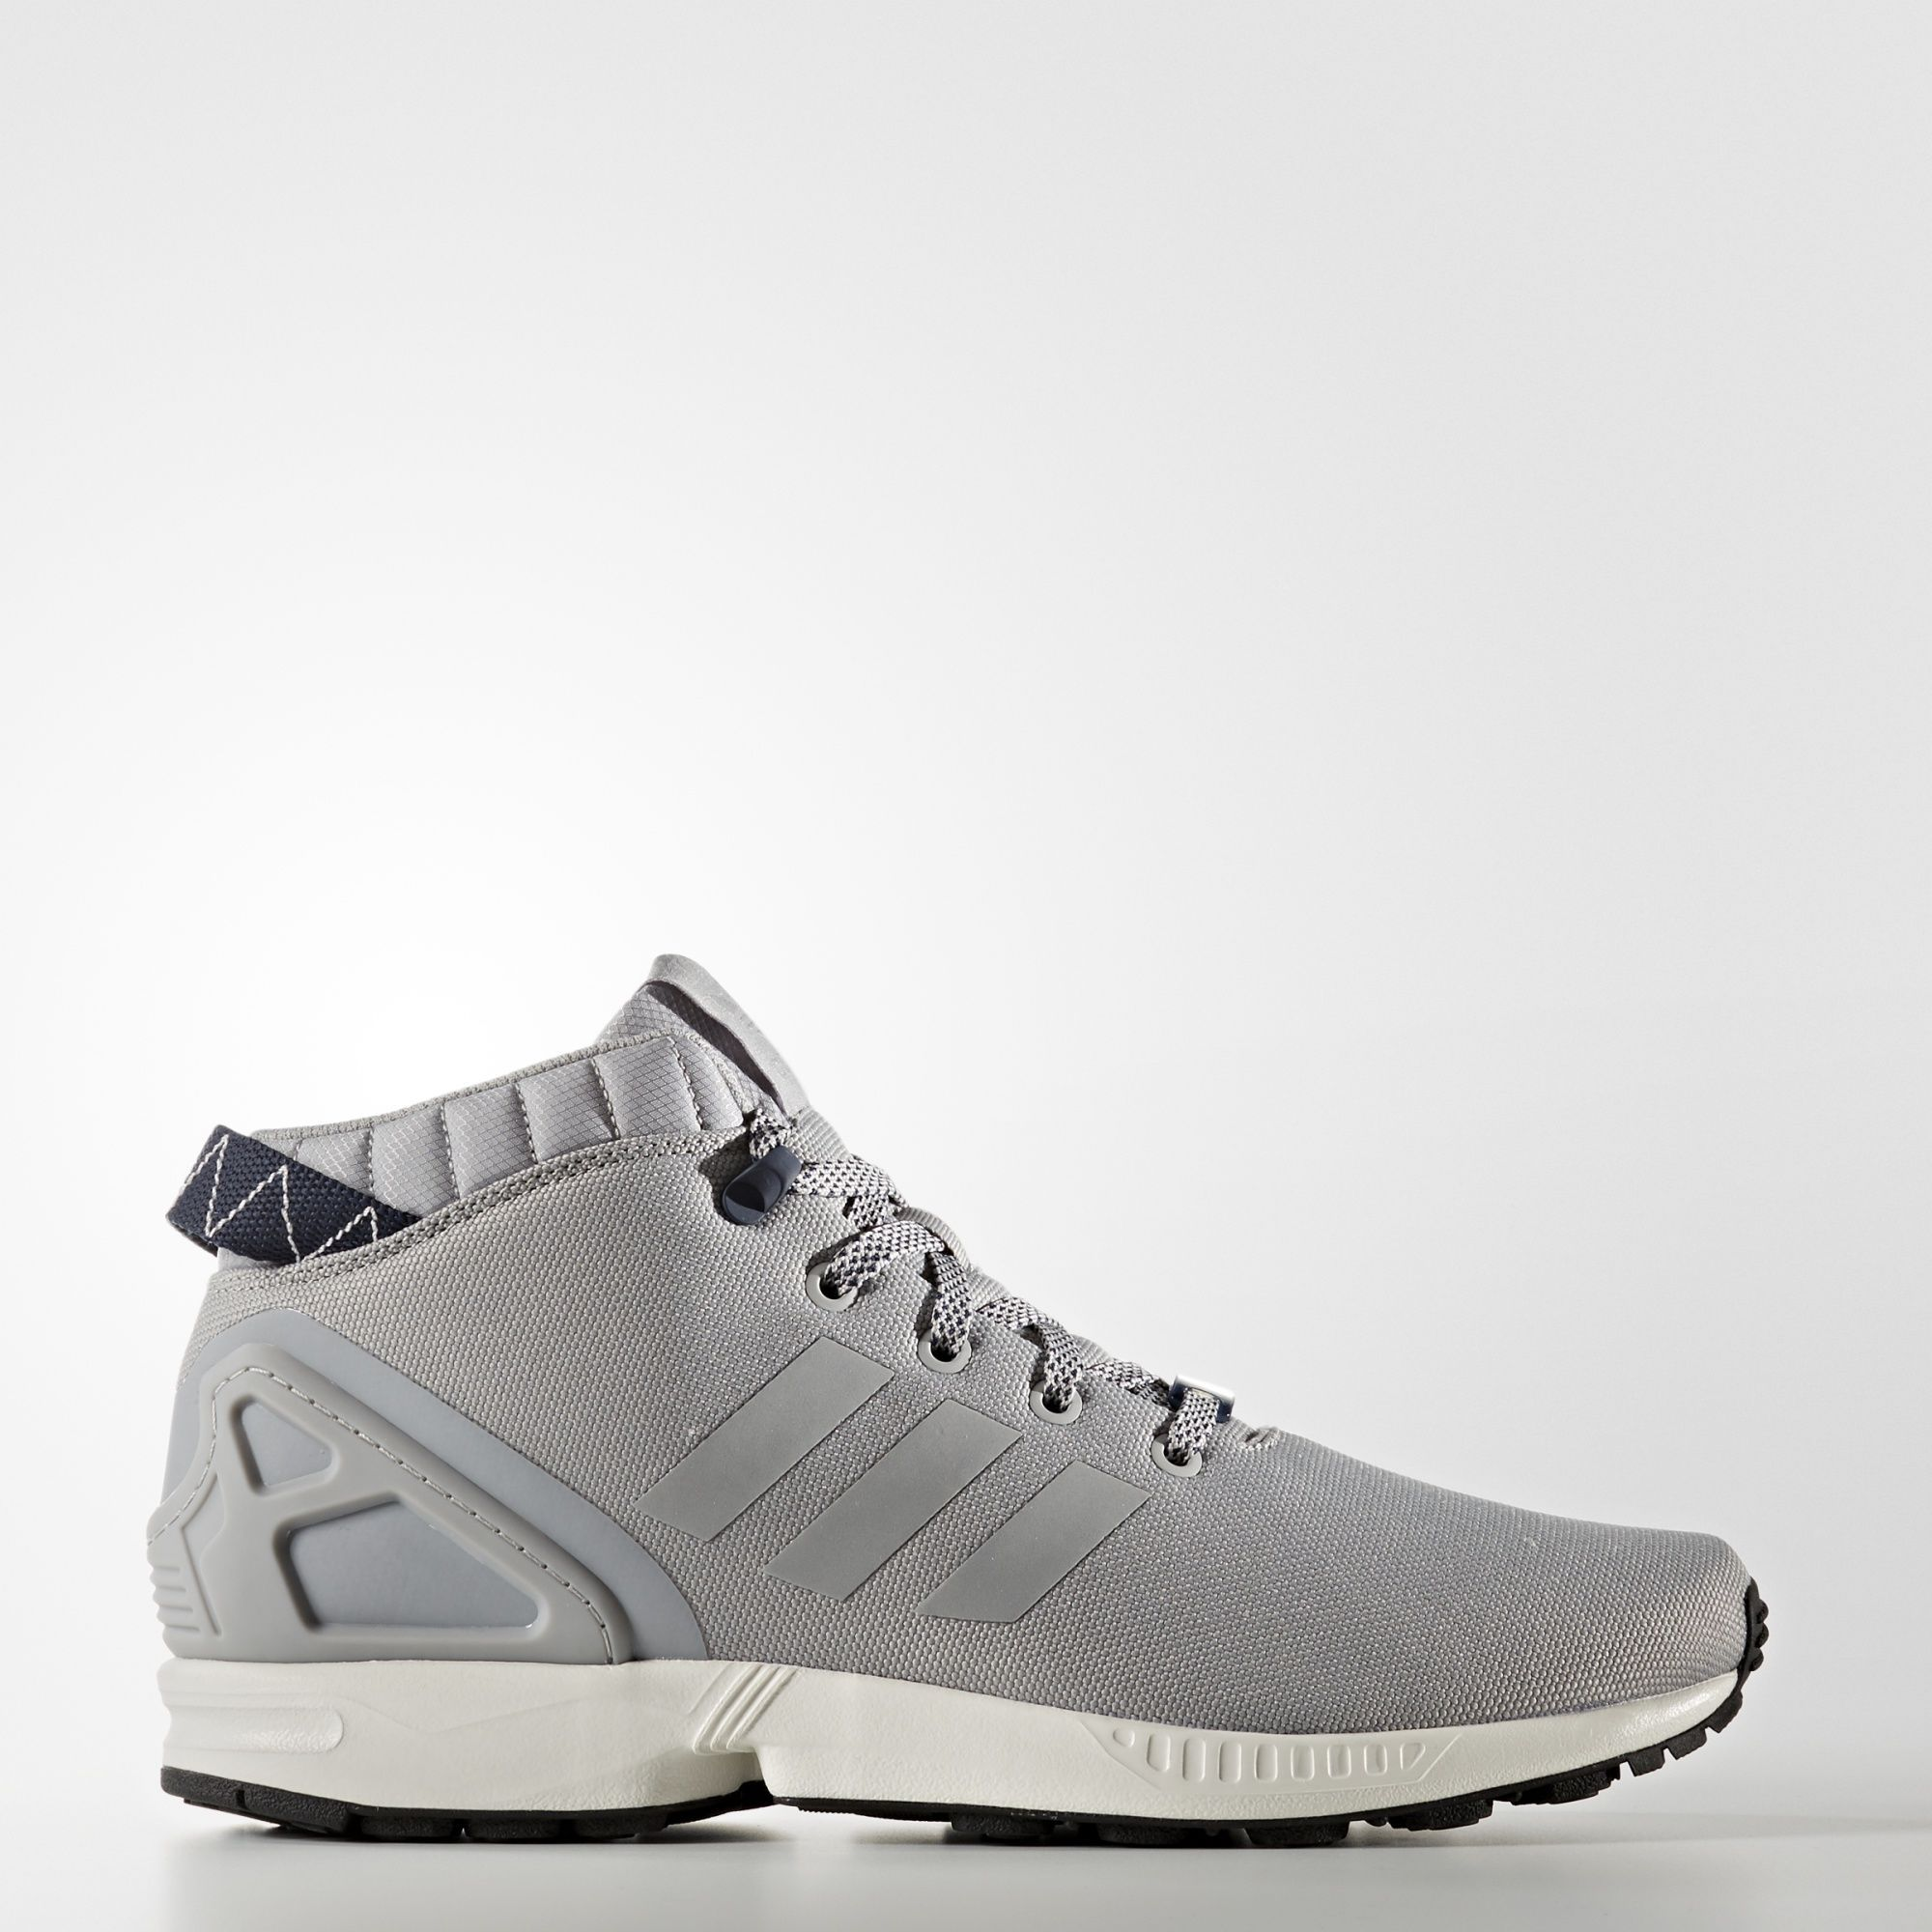 96bb82673 adidas - ZX Flux 5 8 Shoes Mgh Solid Grey £56